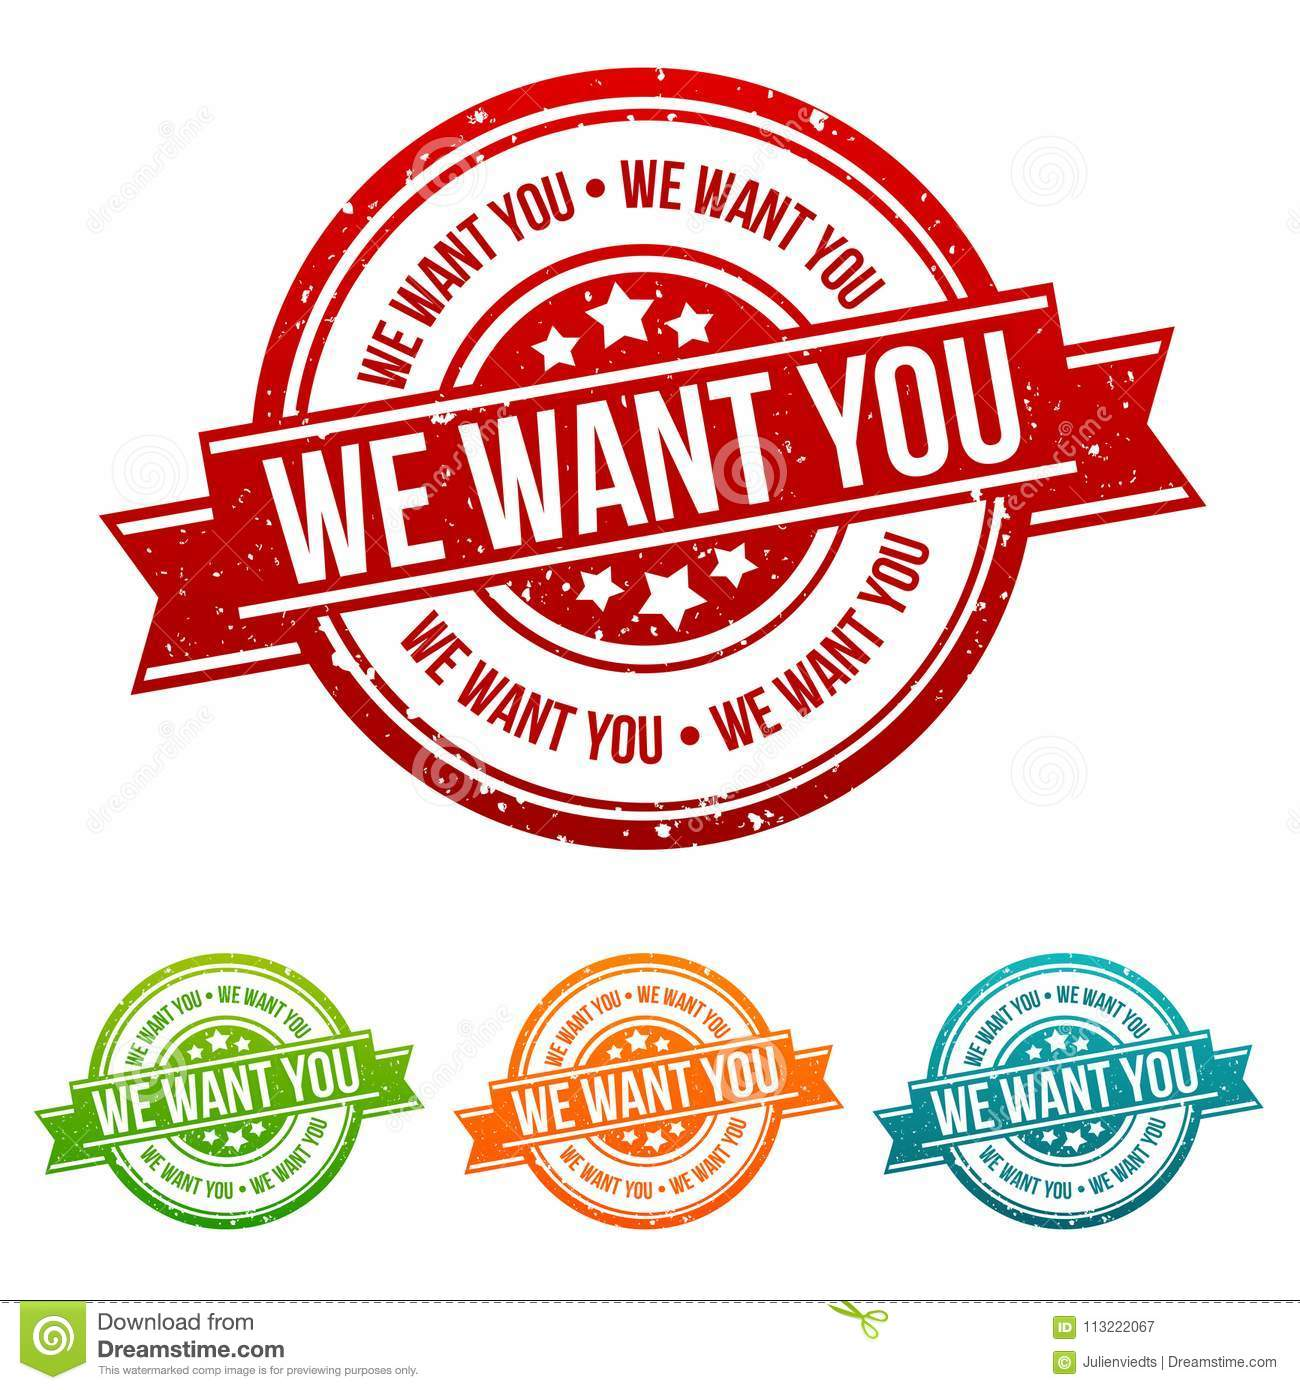 We want you Stamp - Badges in different colours.